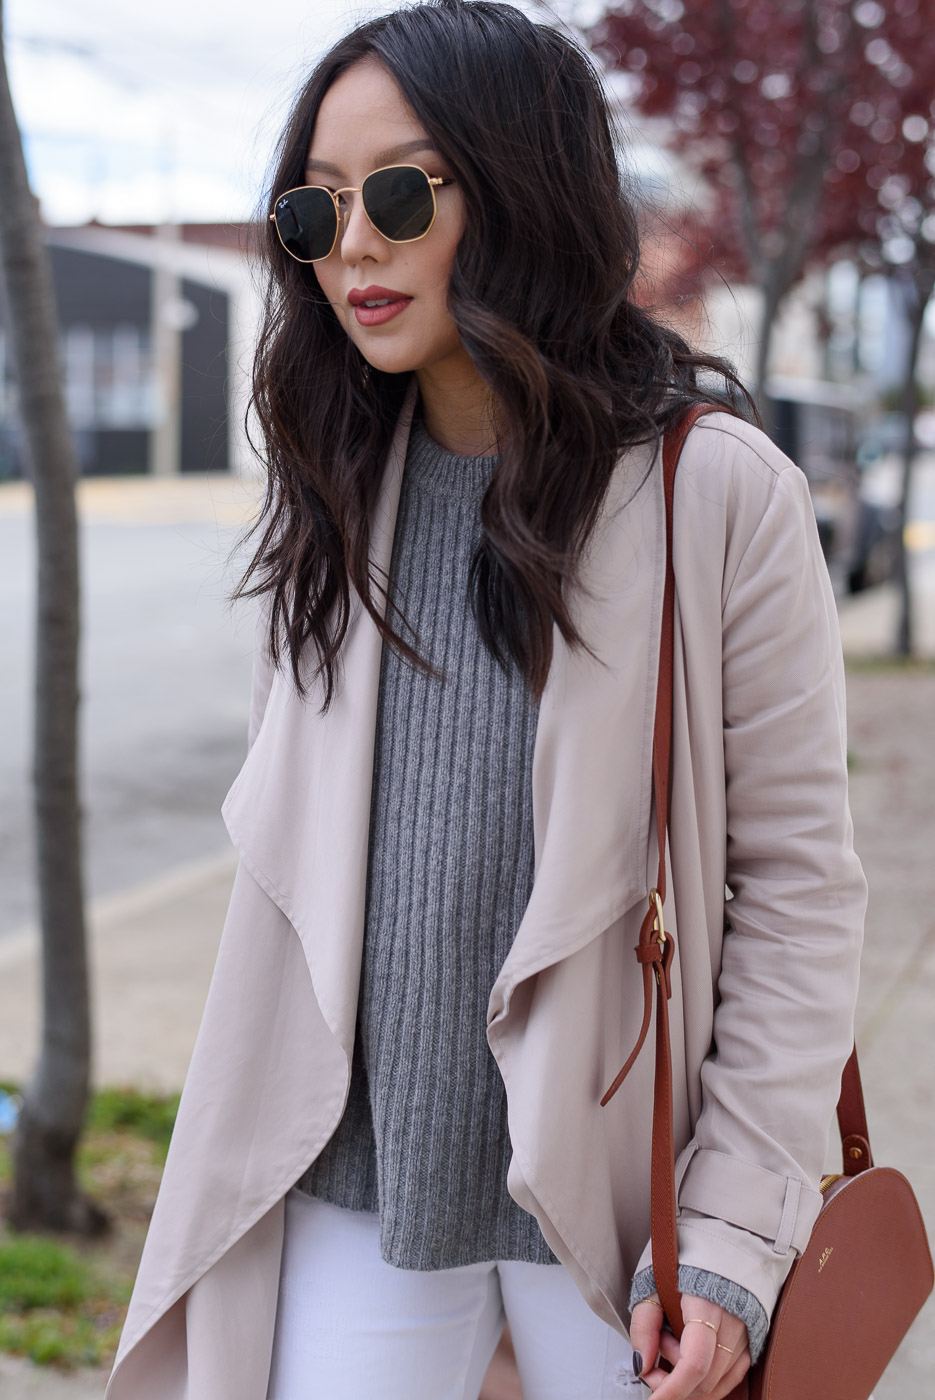 Spring Trend: Blush Trench Coat | The Fancy Pants Report